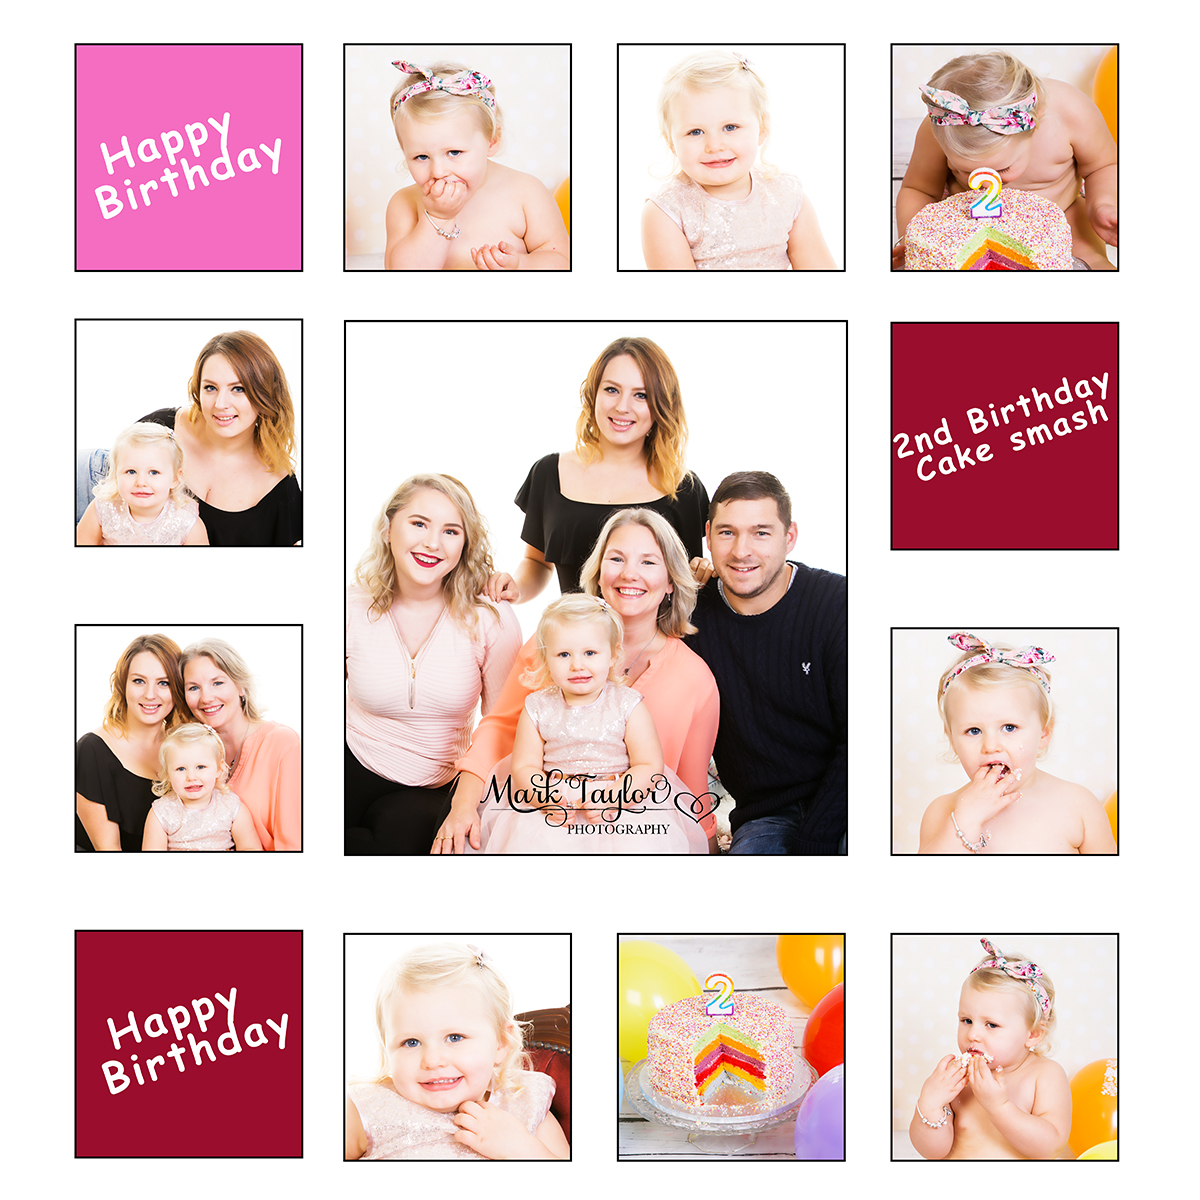 portrait photography, portrait photographer, birthday cake smash, portrait photographer weston super mare, portrait photography weston super mare